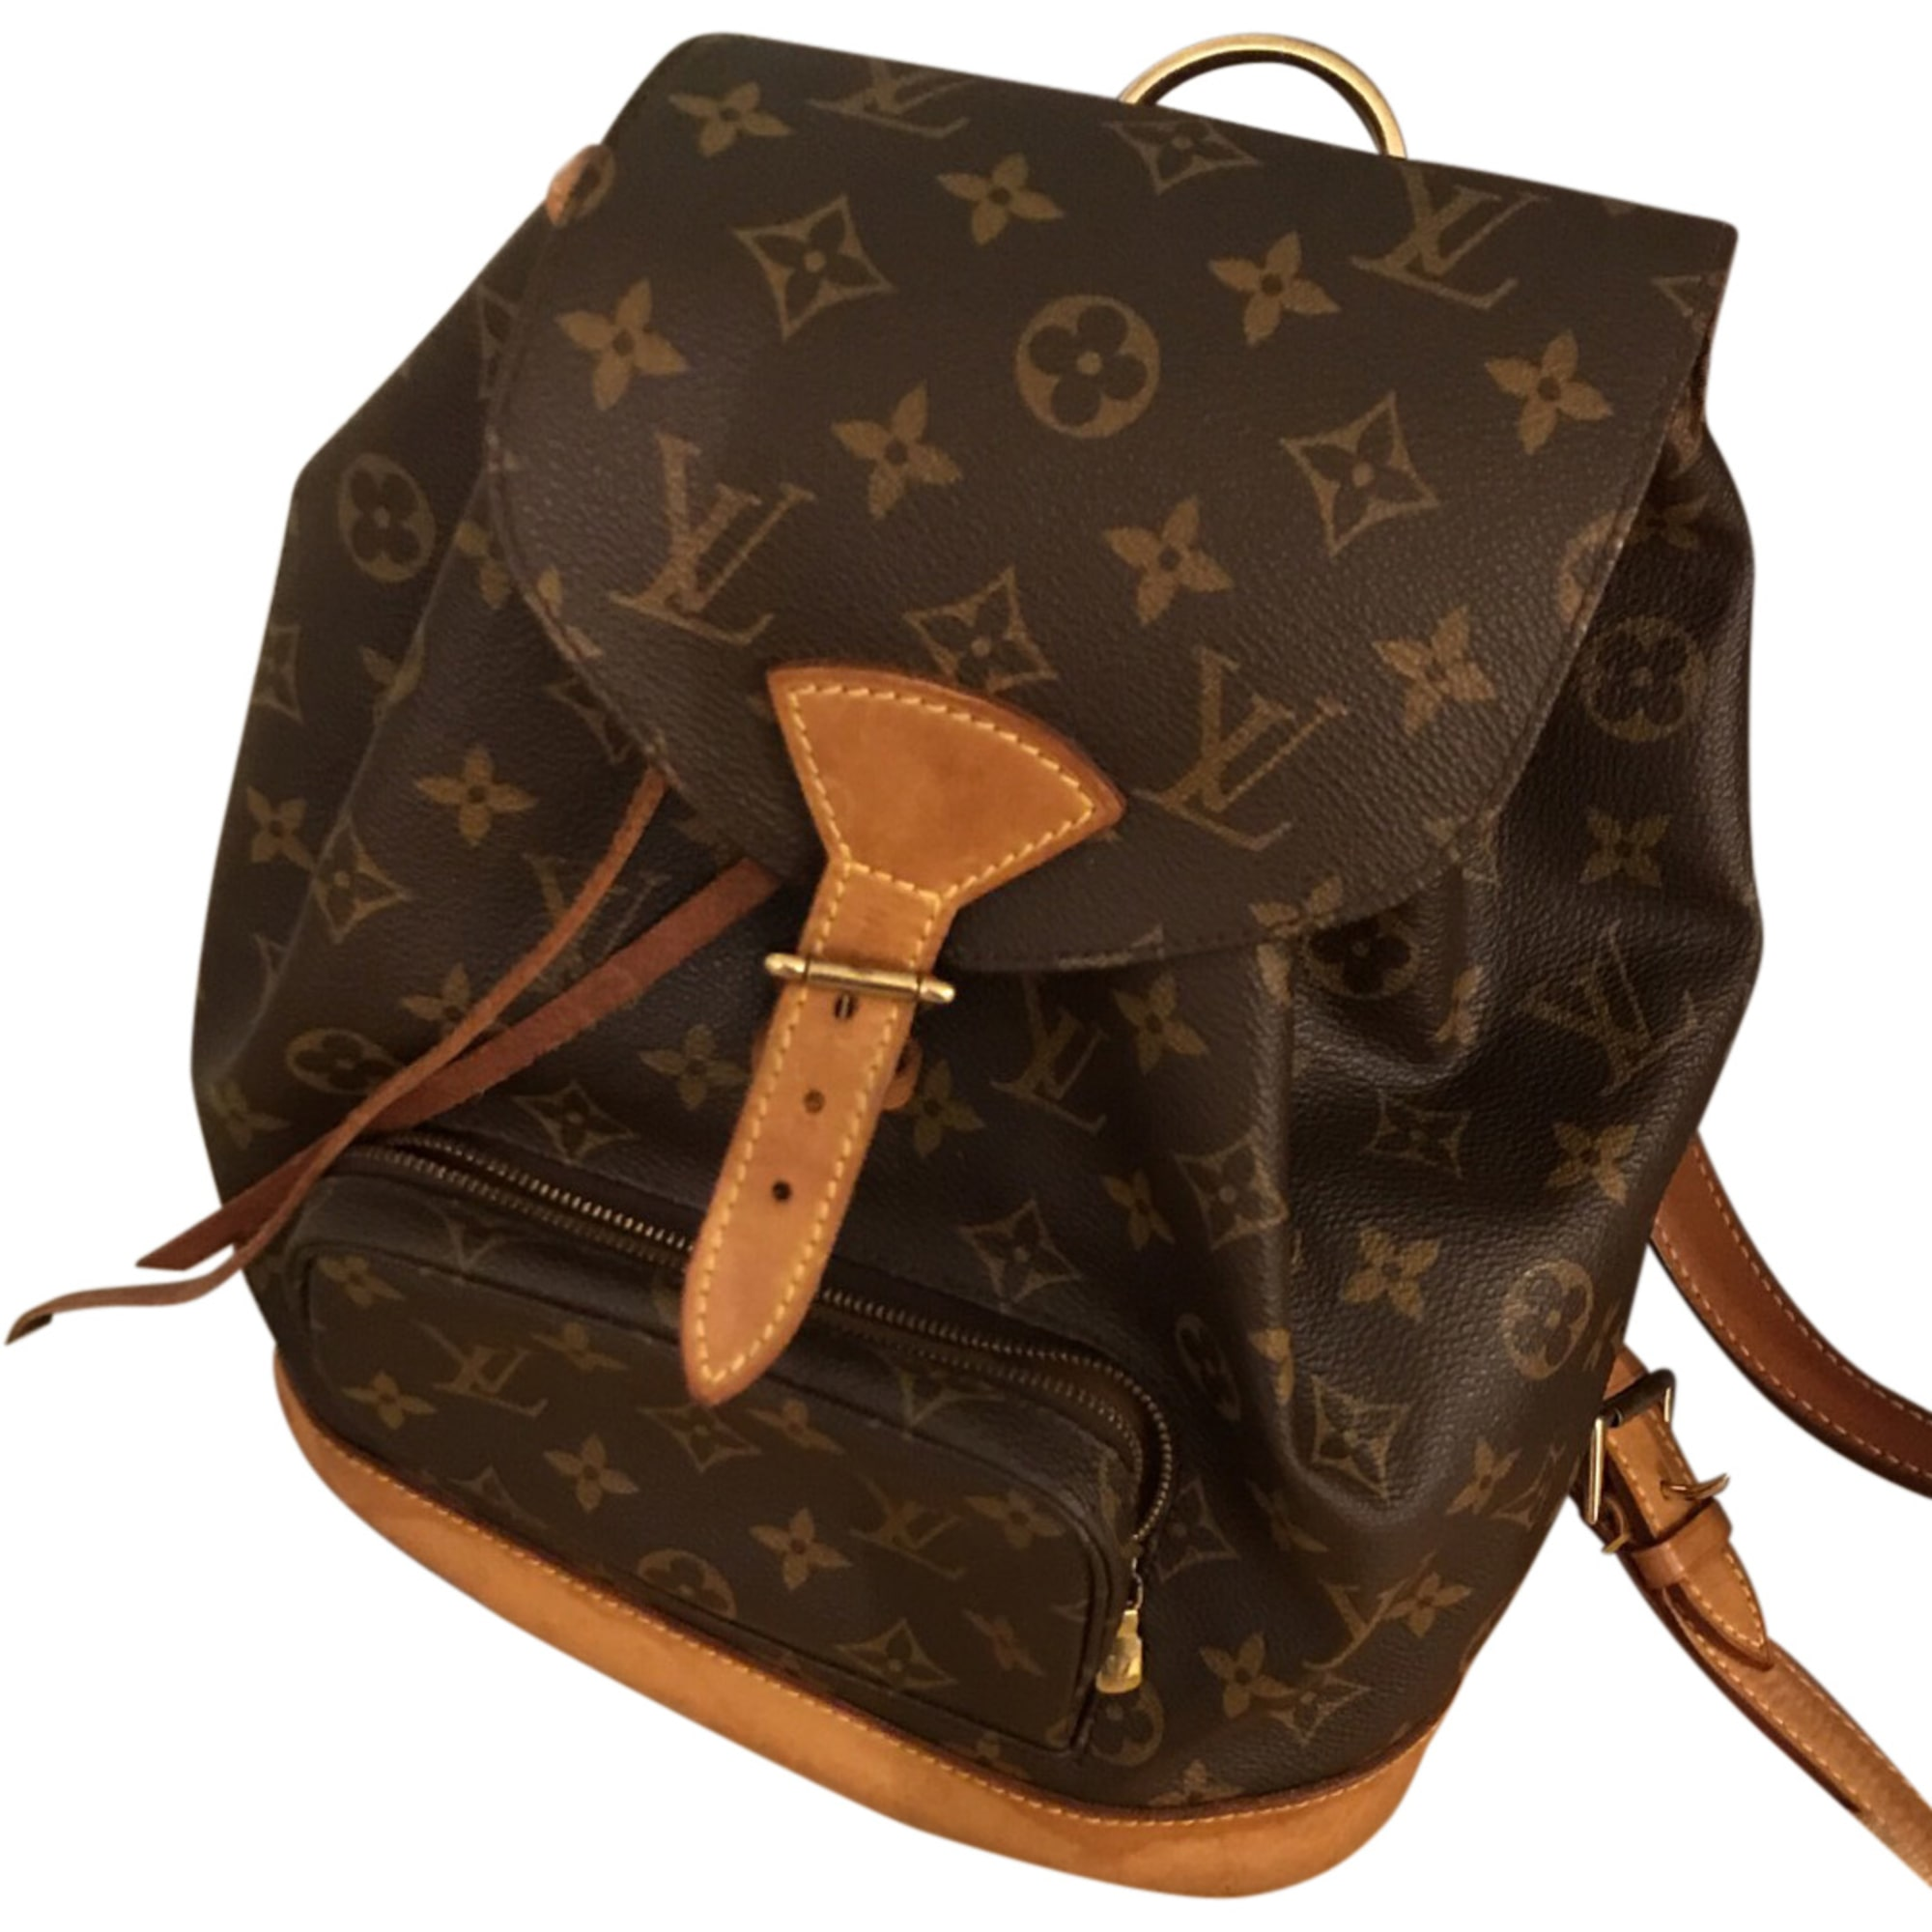 0917f0221492 Sac à dos LOUIS VUITTON beige - 7966975